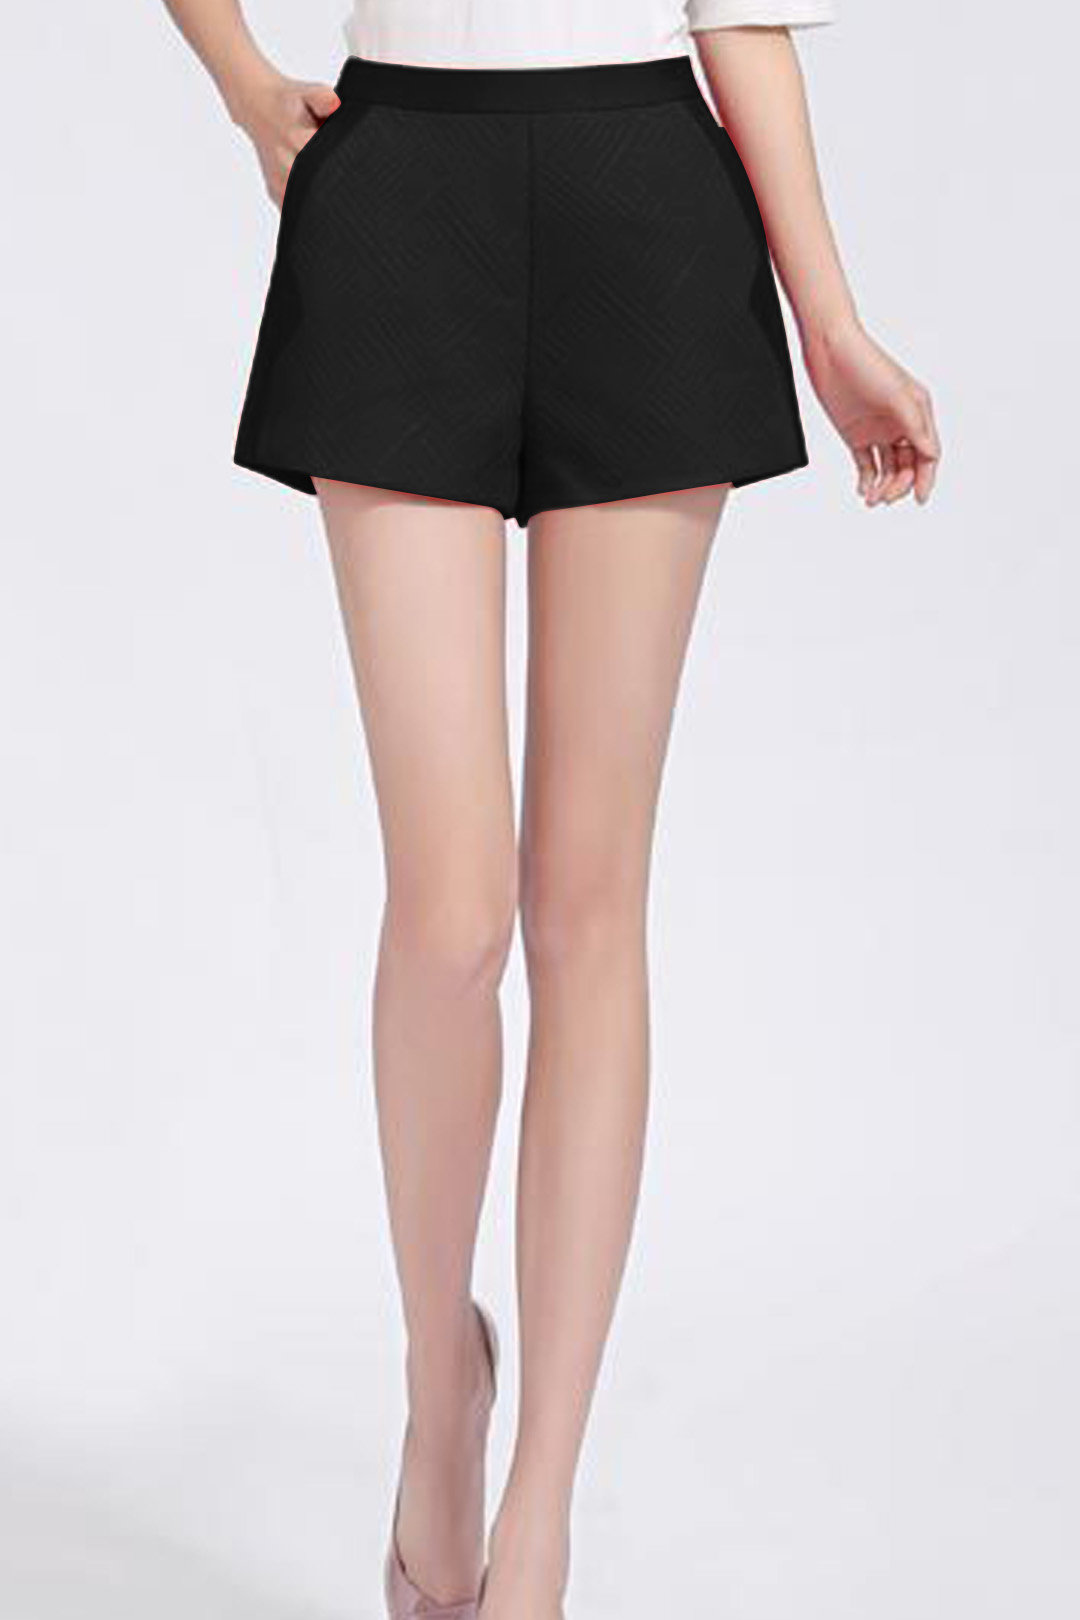 Black High Waist Shorts with Side Pockets